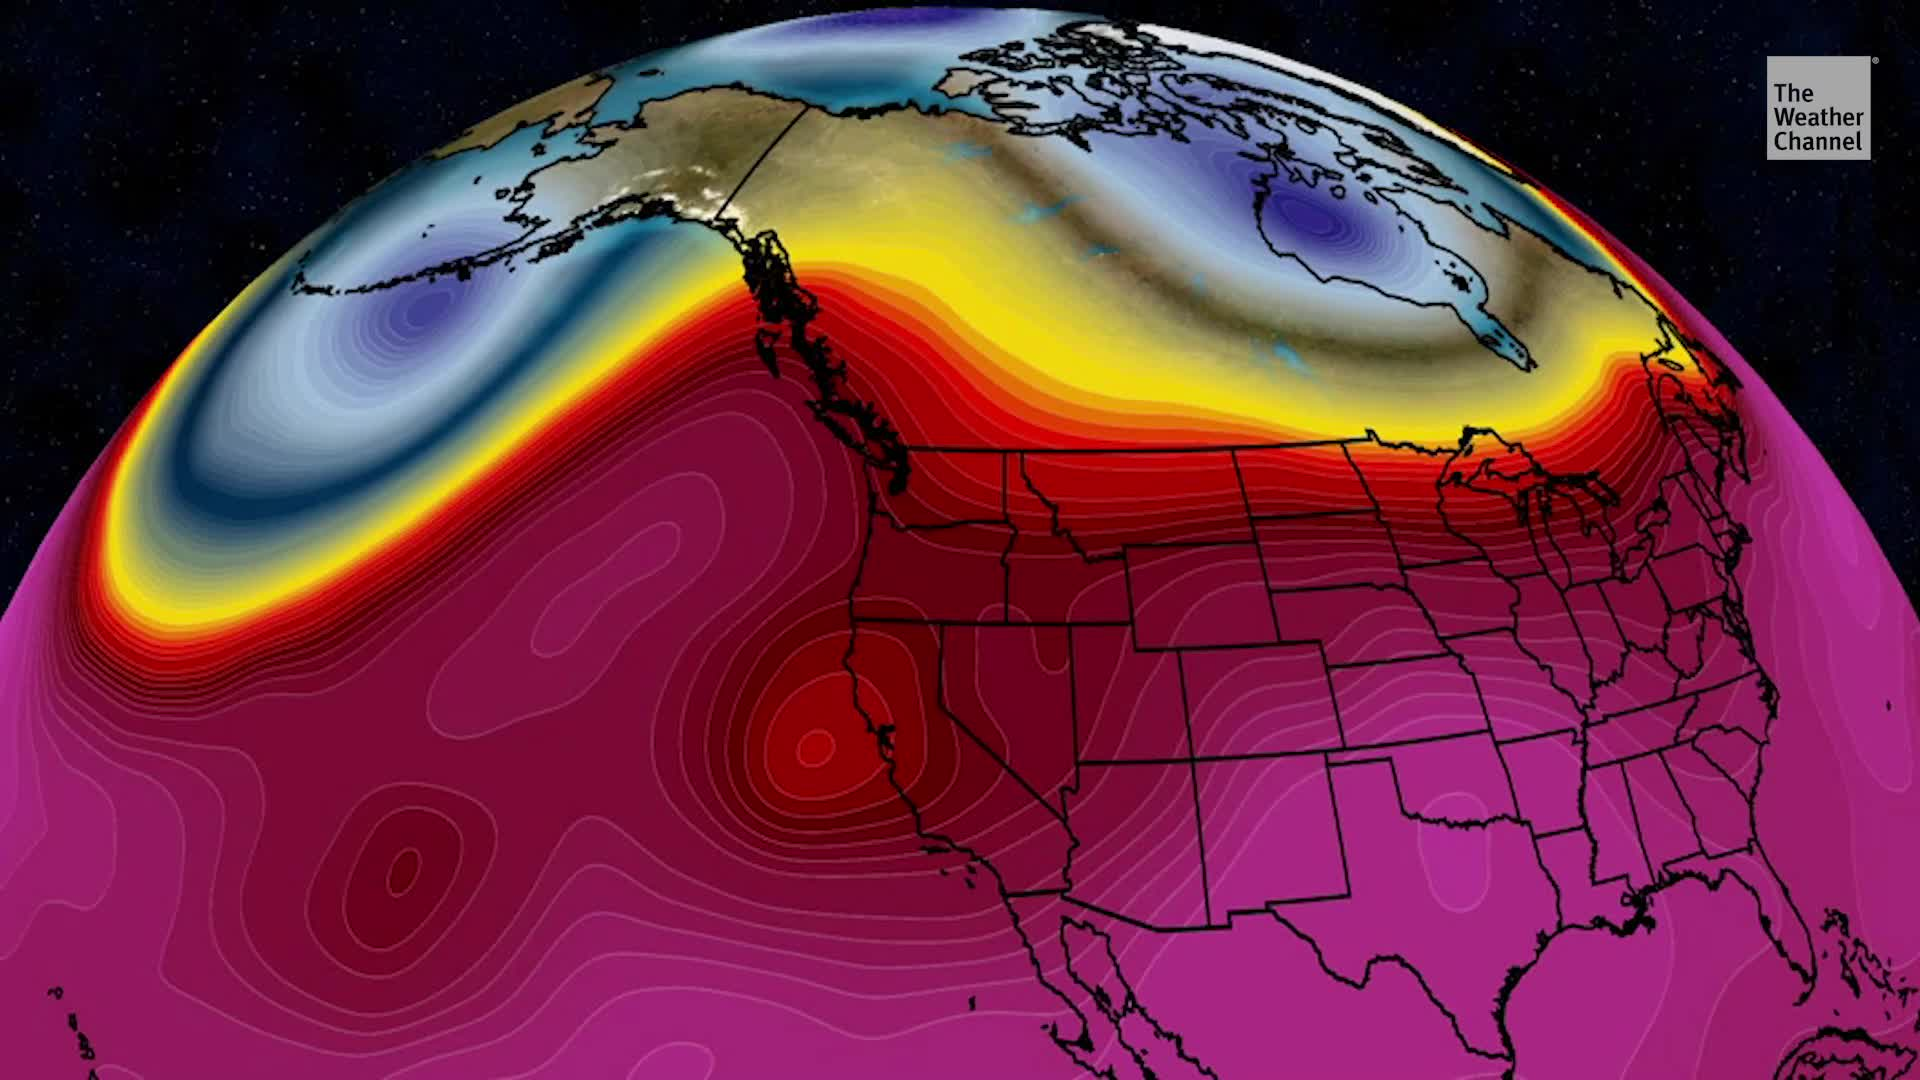 Potentially Historic Northwest Heat Wave Likely to Bring Dangerous, Record-Breaking Temperatures - Videos from The Weather Channel | weather.com